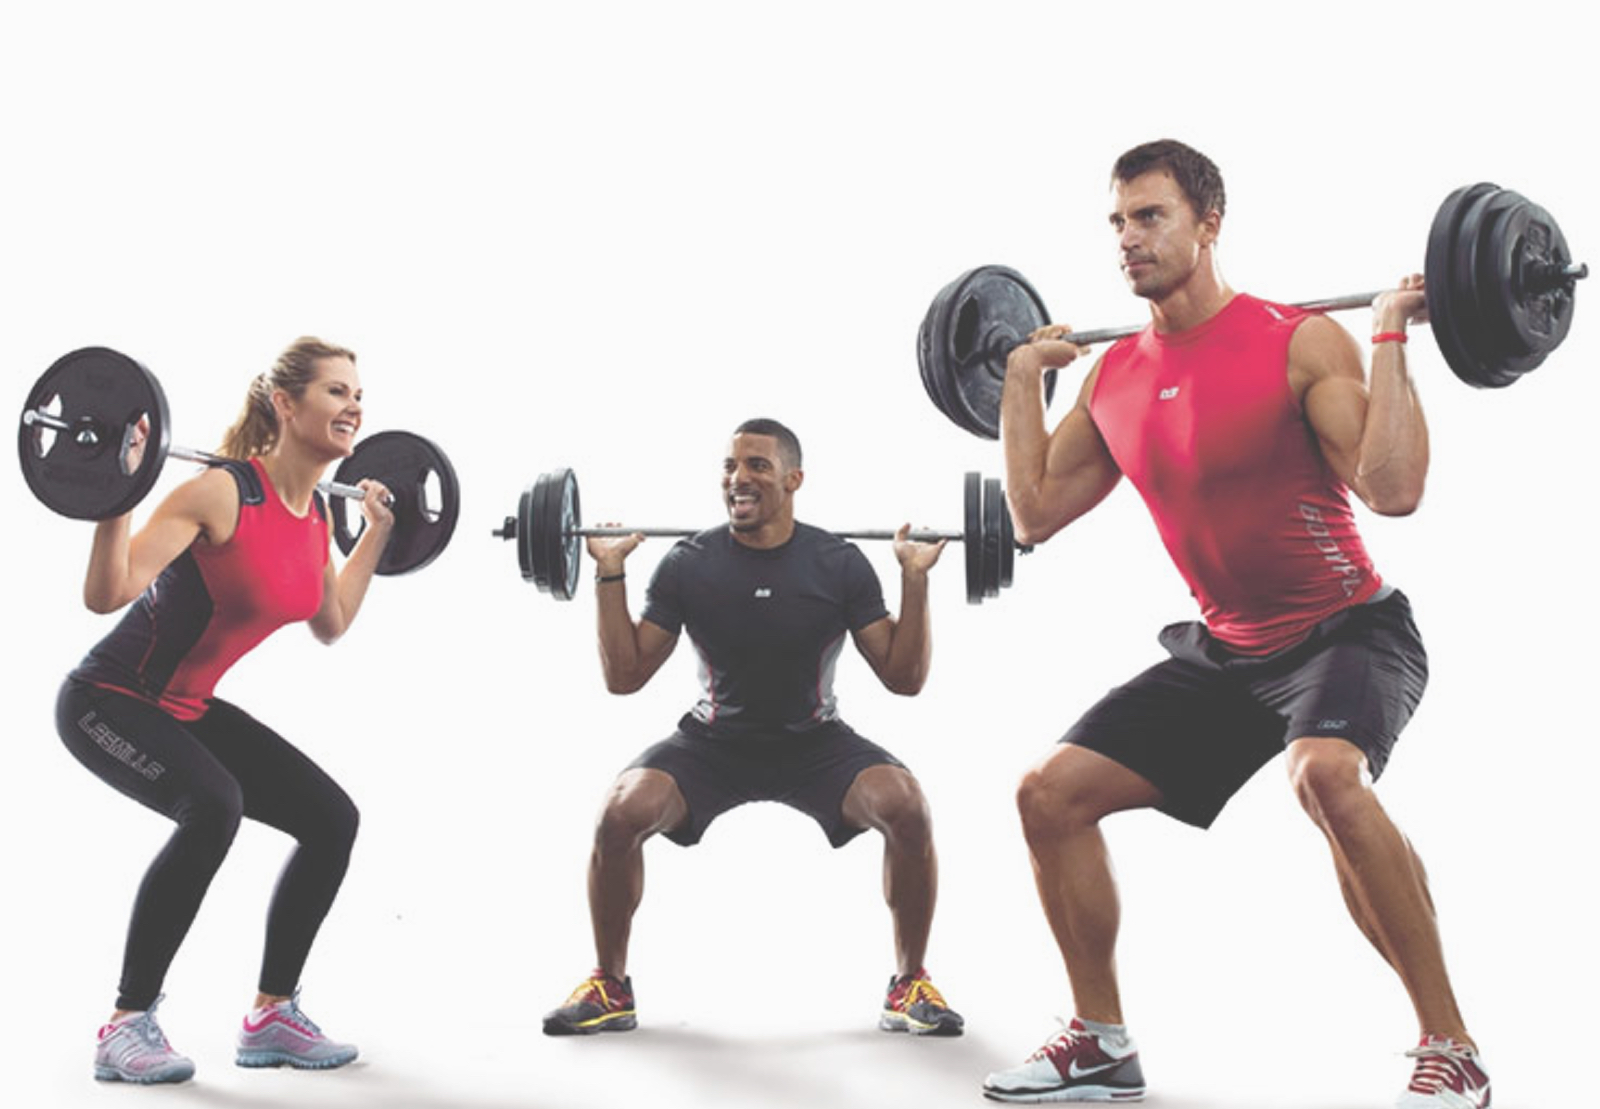 <p>Adult Group Training<a href=adult-small-group-training>☞</a></p>